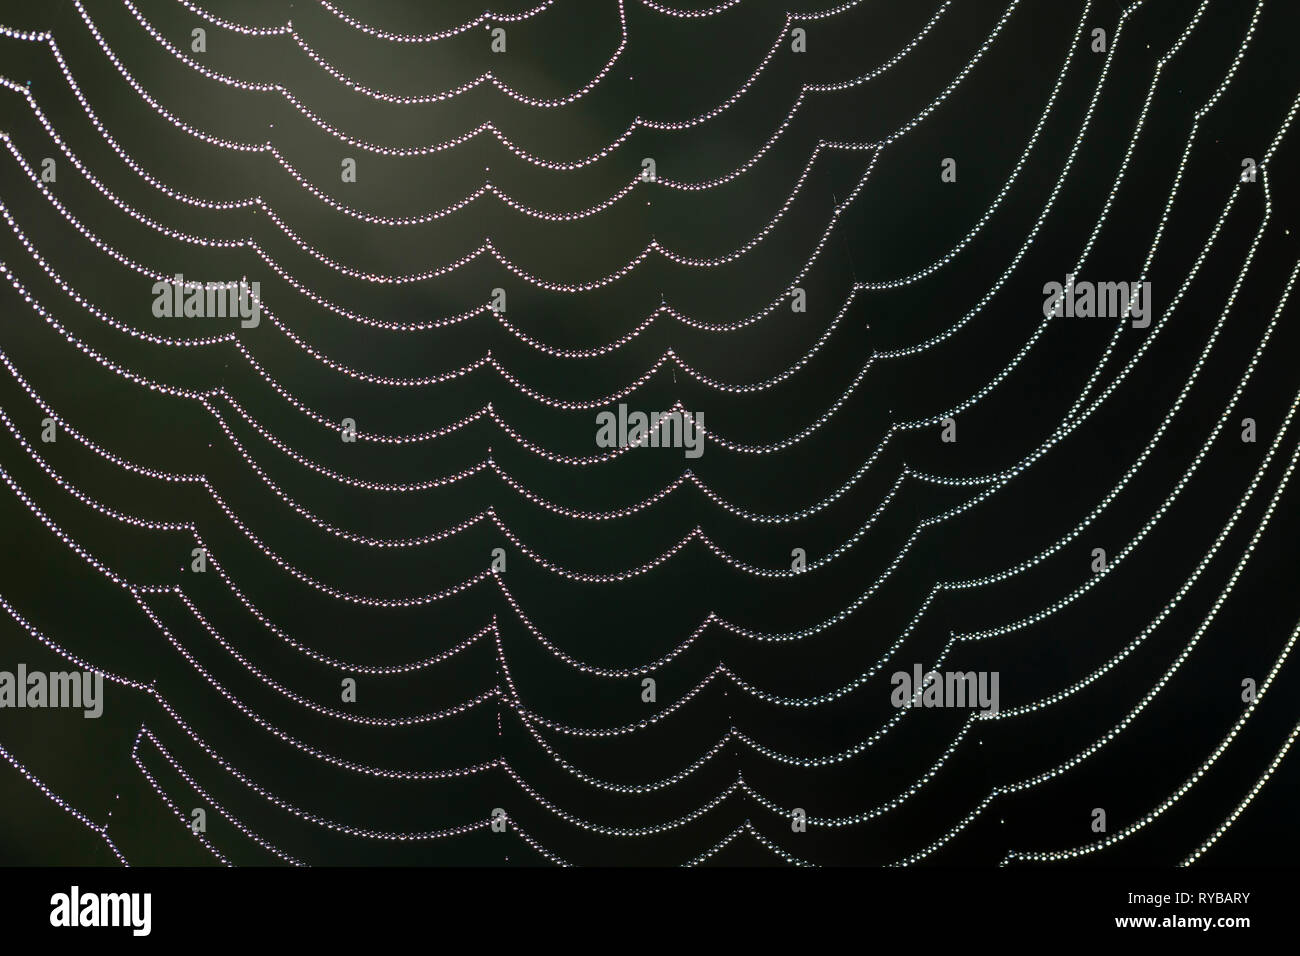 Close-up of dewdrops / dew drops on spider's web / spiderweb - Stock Image